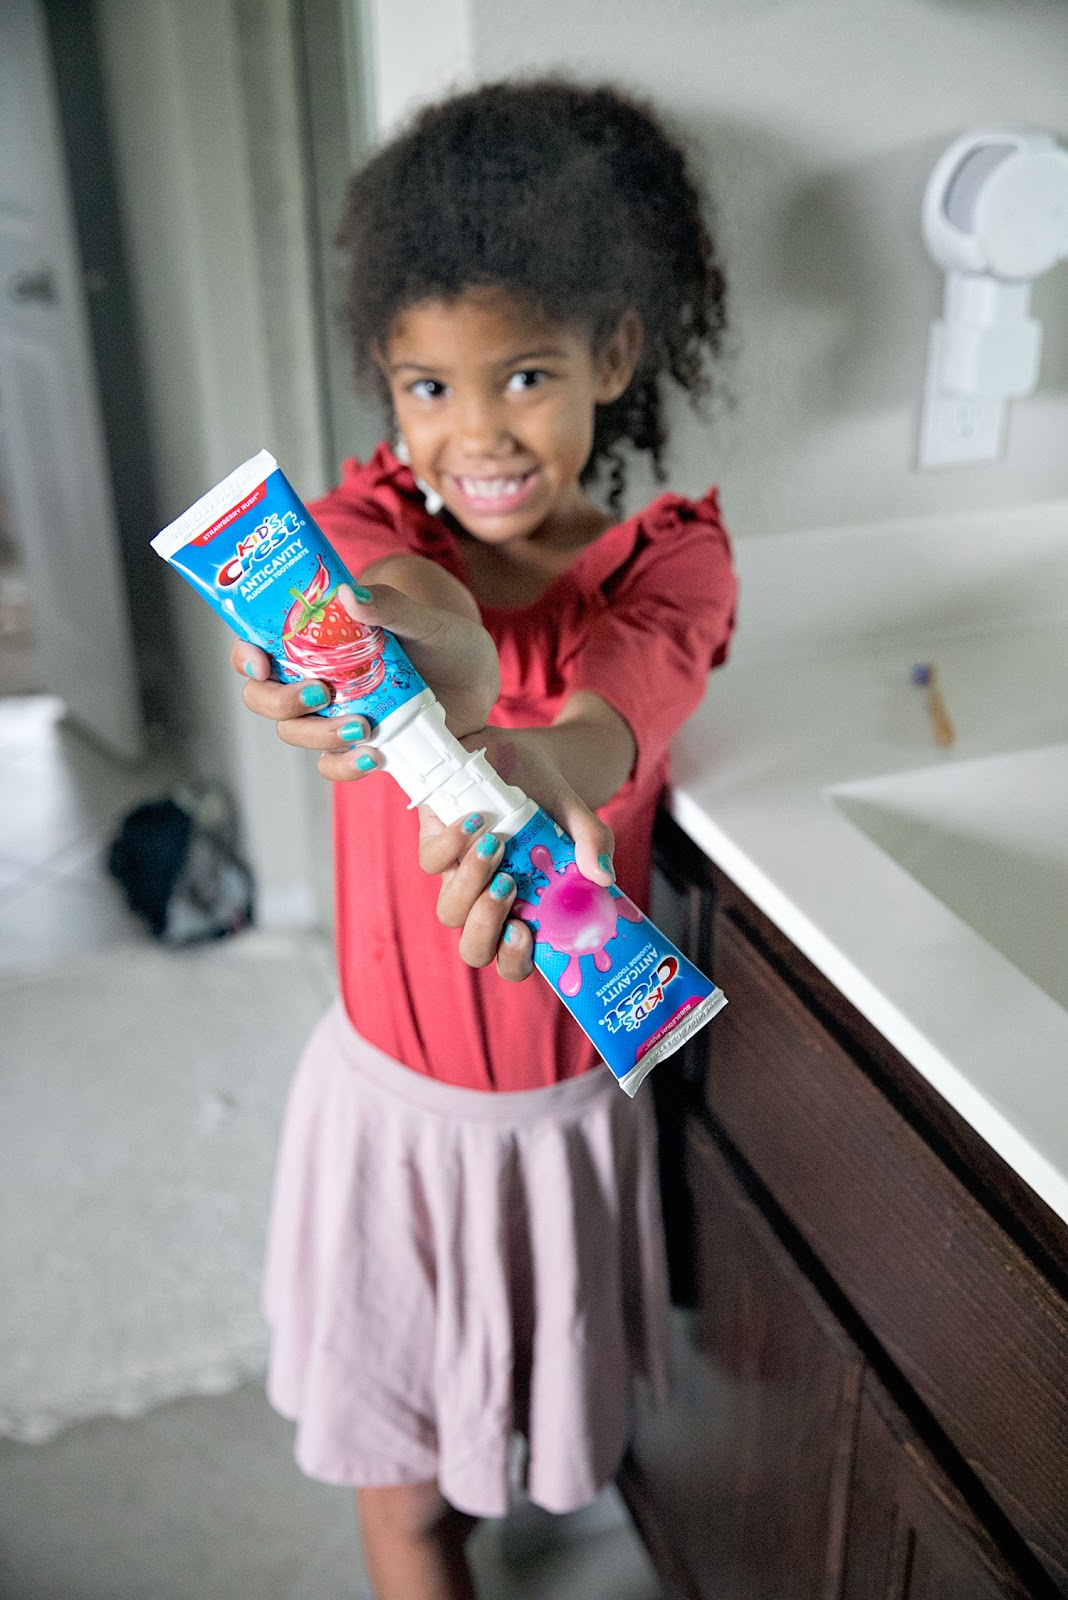 This is our mission to find the best kids toothpaste. Little girl holding strawberry toothpaste and bubblegum toothpaste.